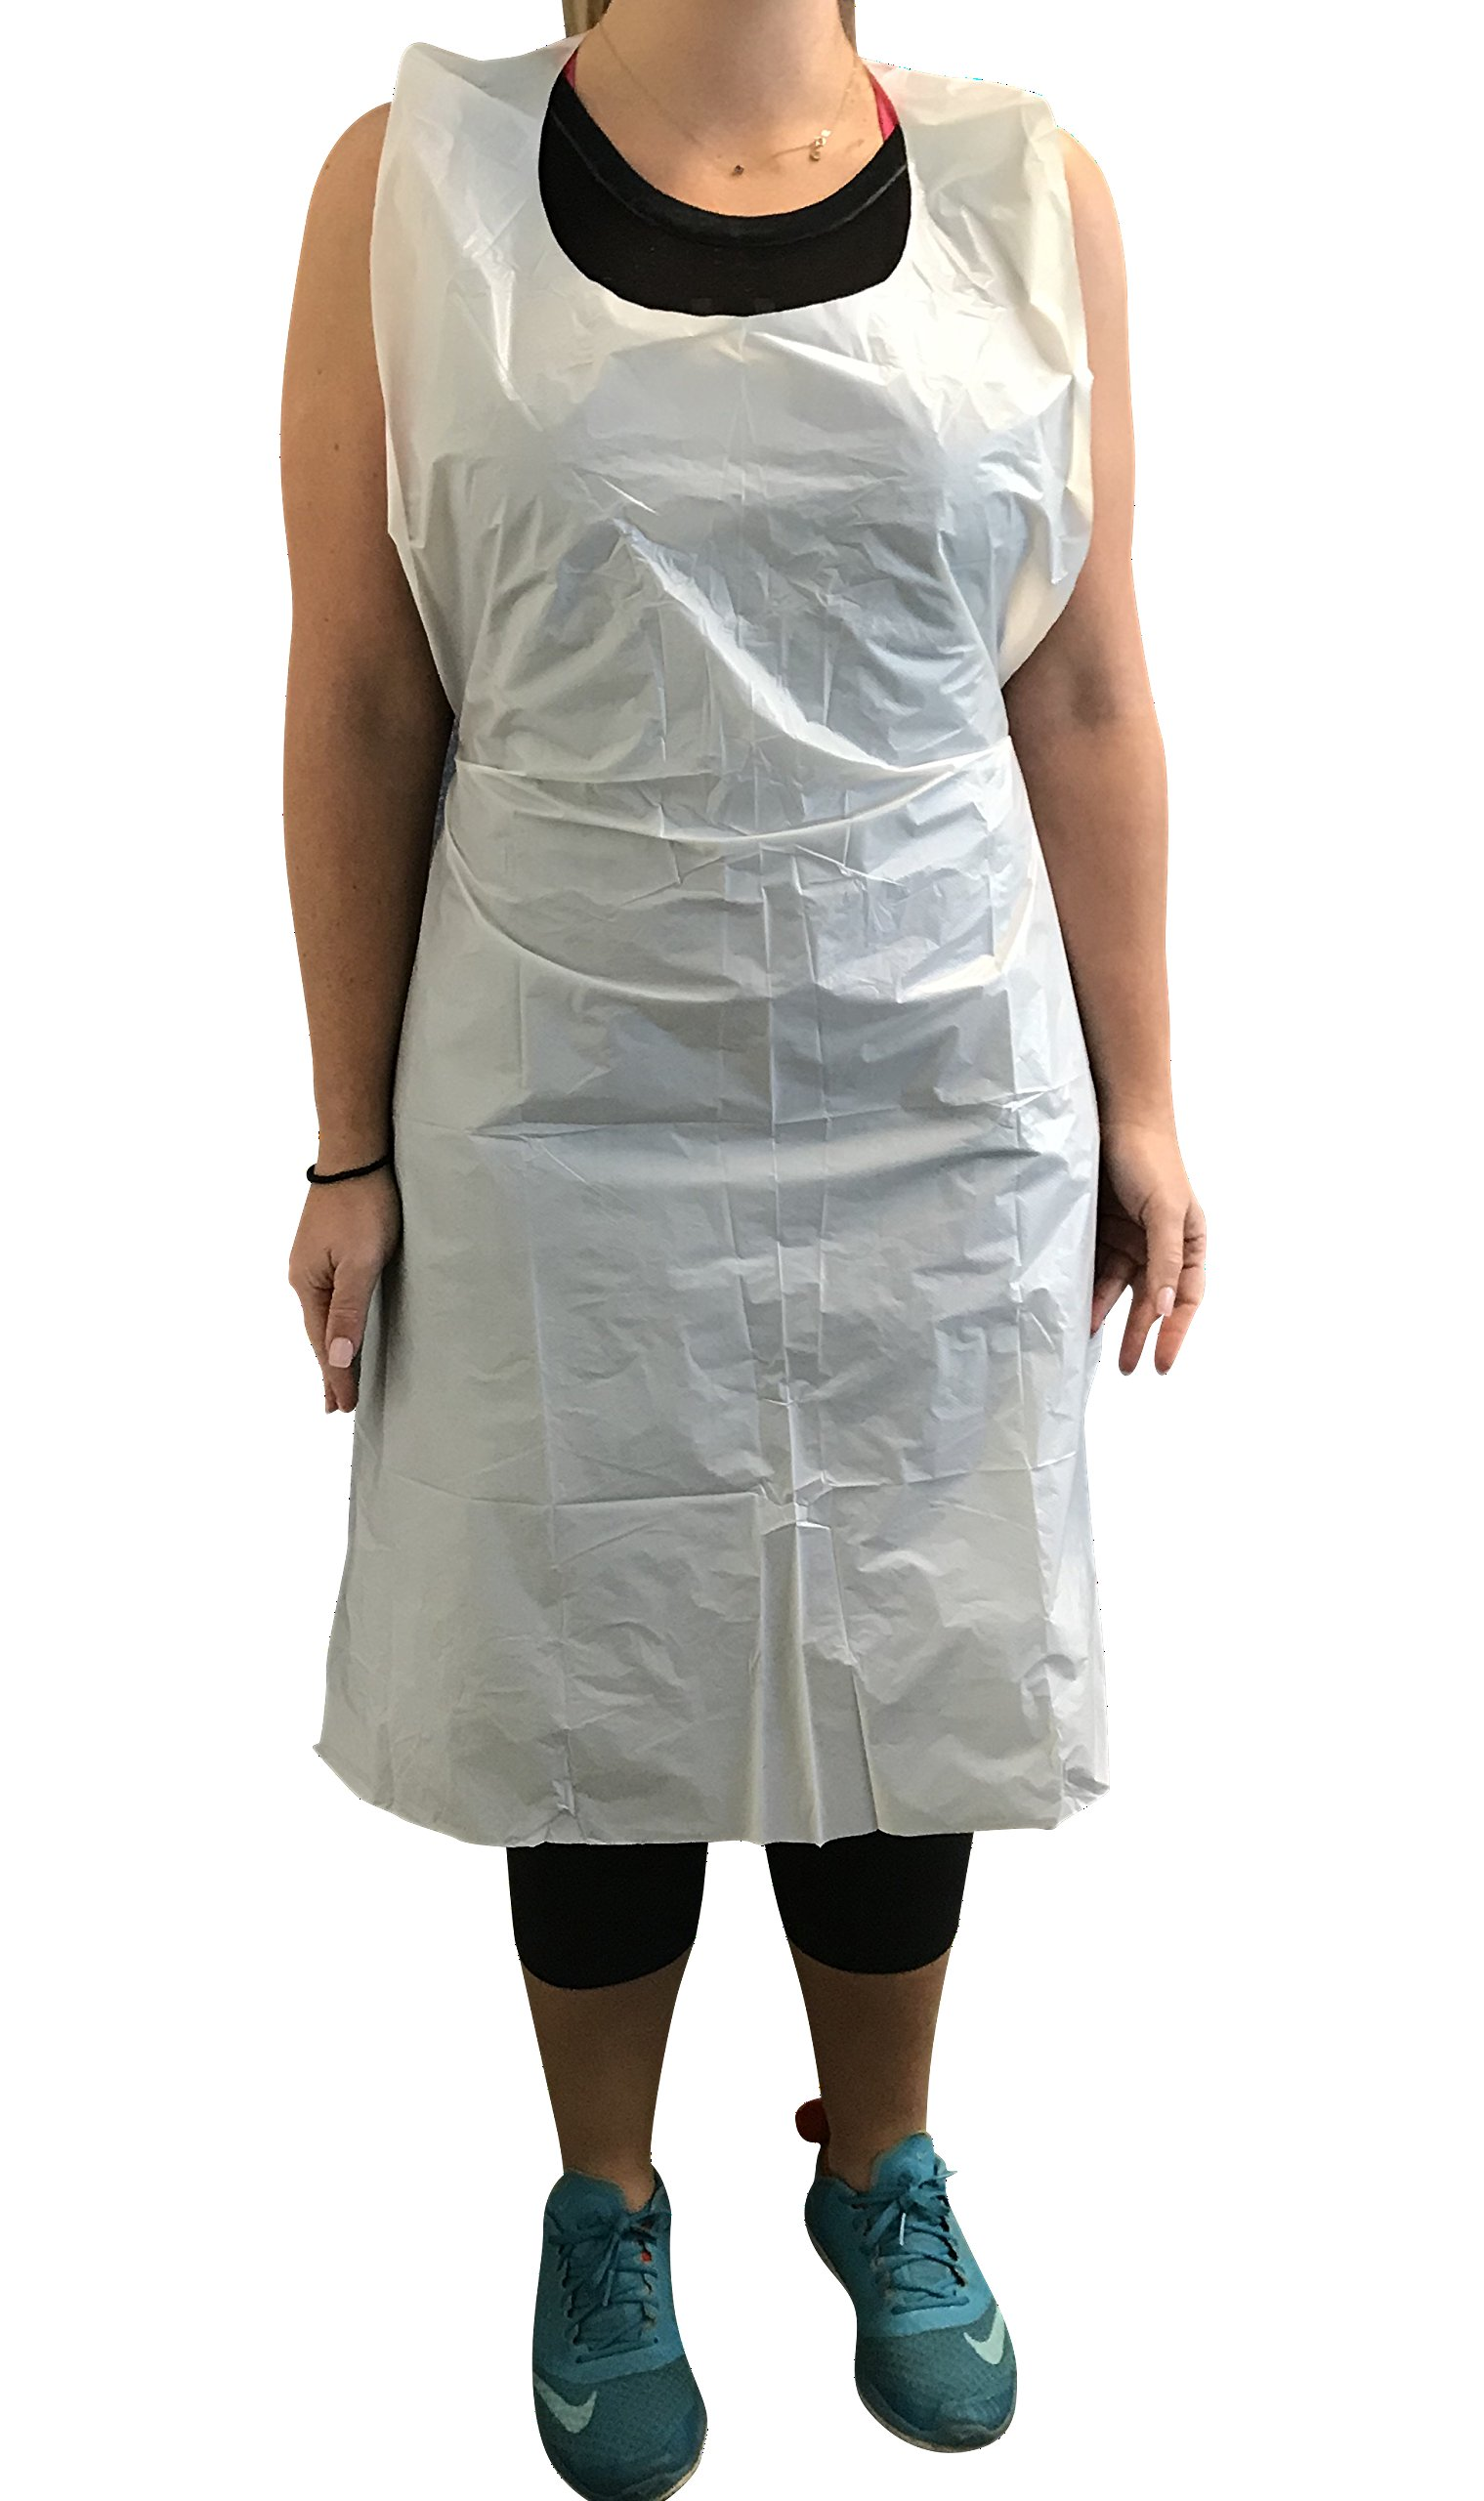 KingSeal Disposable Poly Aprons, 24 x 42 inches, 0.8 mils thick, Individually Packed, White, Bib Style - 1 Box of 100 Aprons (100 aprons total)